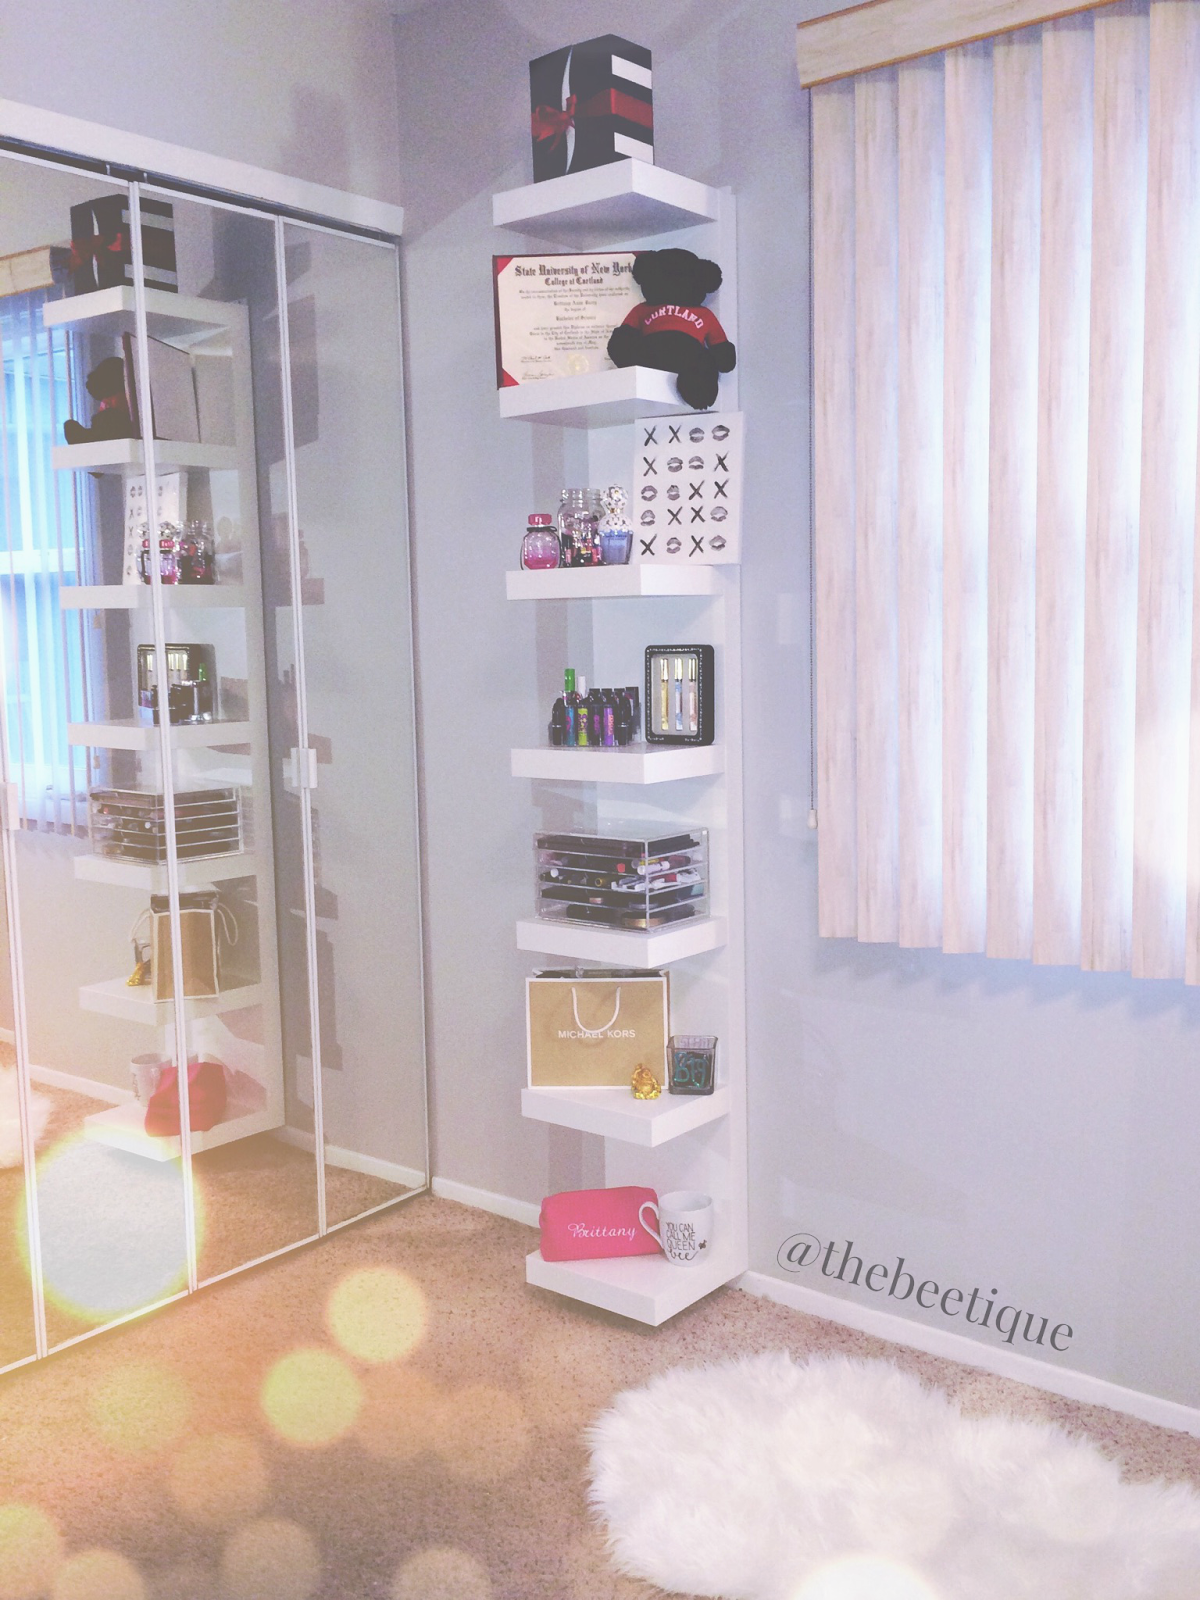 Room Decor Saving Space Vertically The Beetique Organization Bedroom Stylish Bedroom Small Bedroom Organization